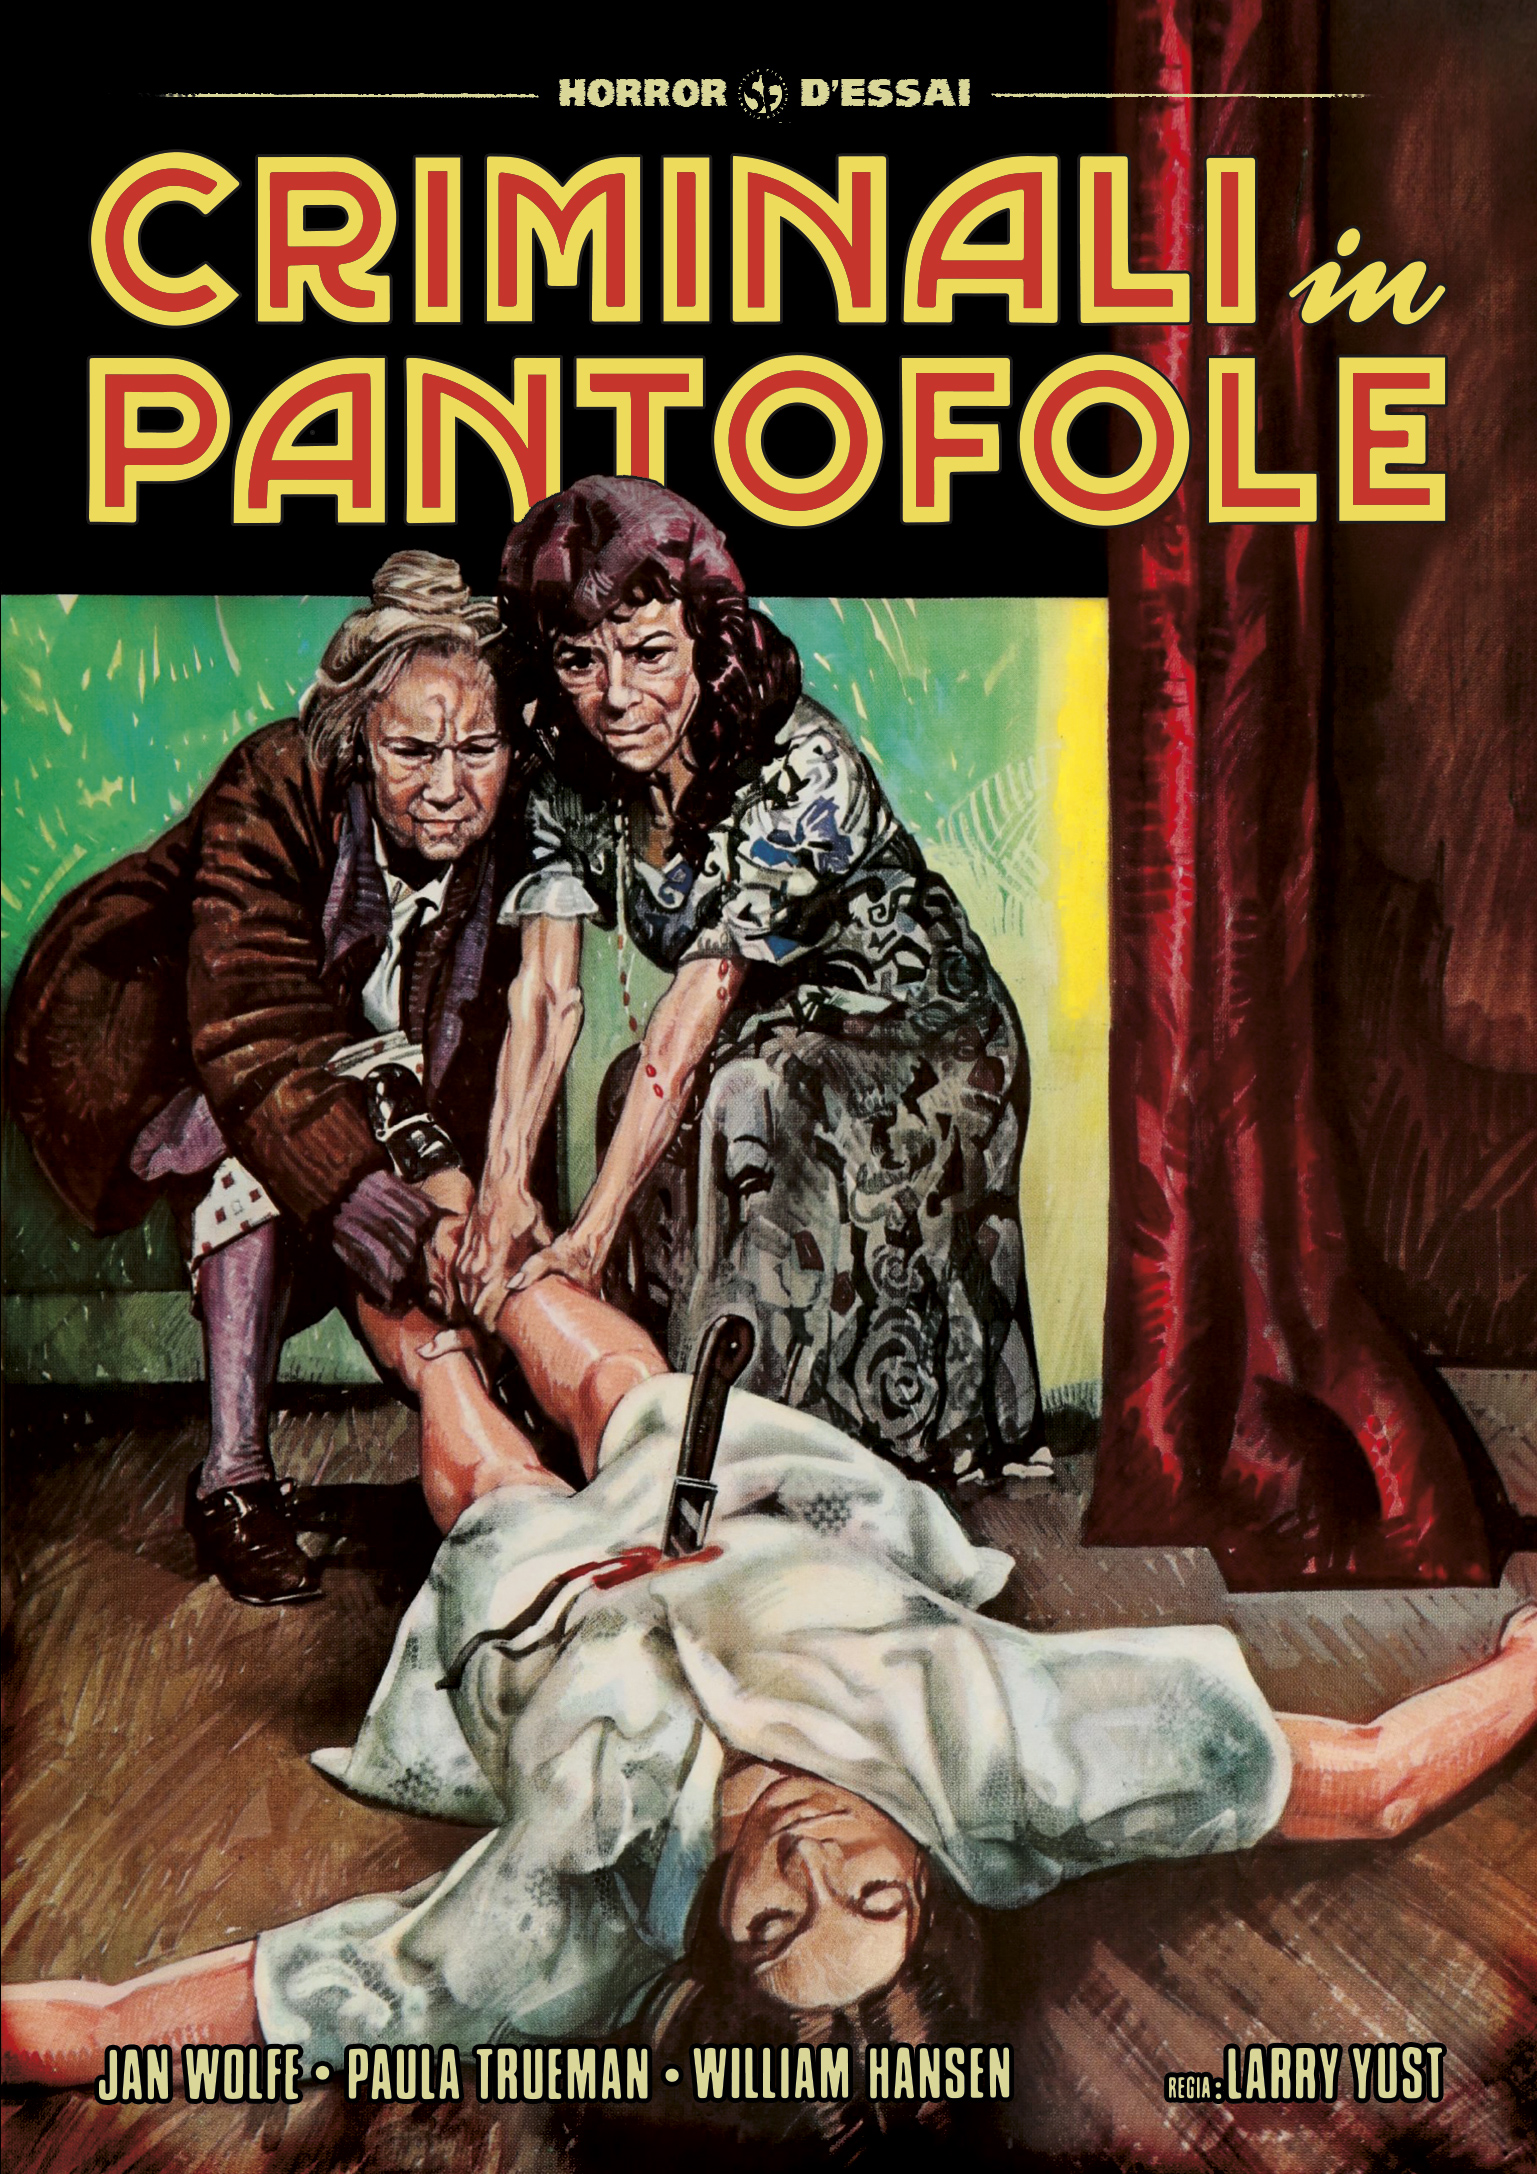 CRIMINALI IN PANTOFOLE (DVD)